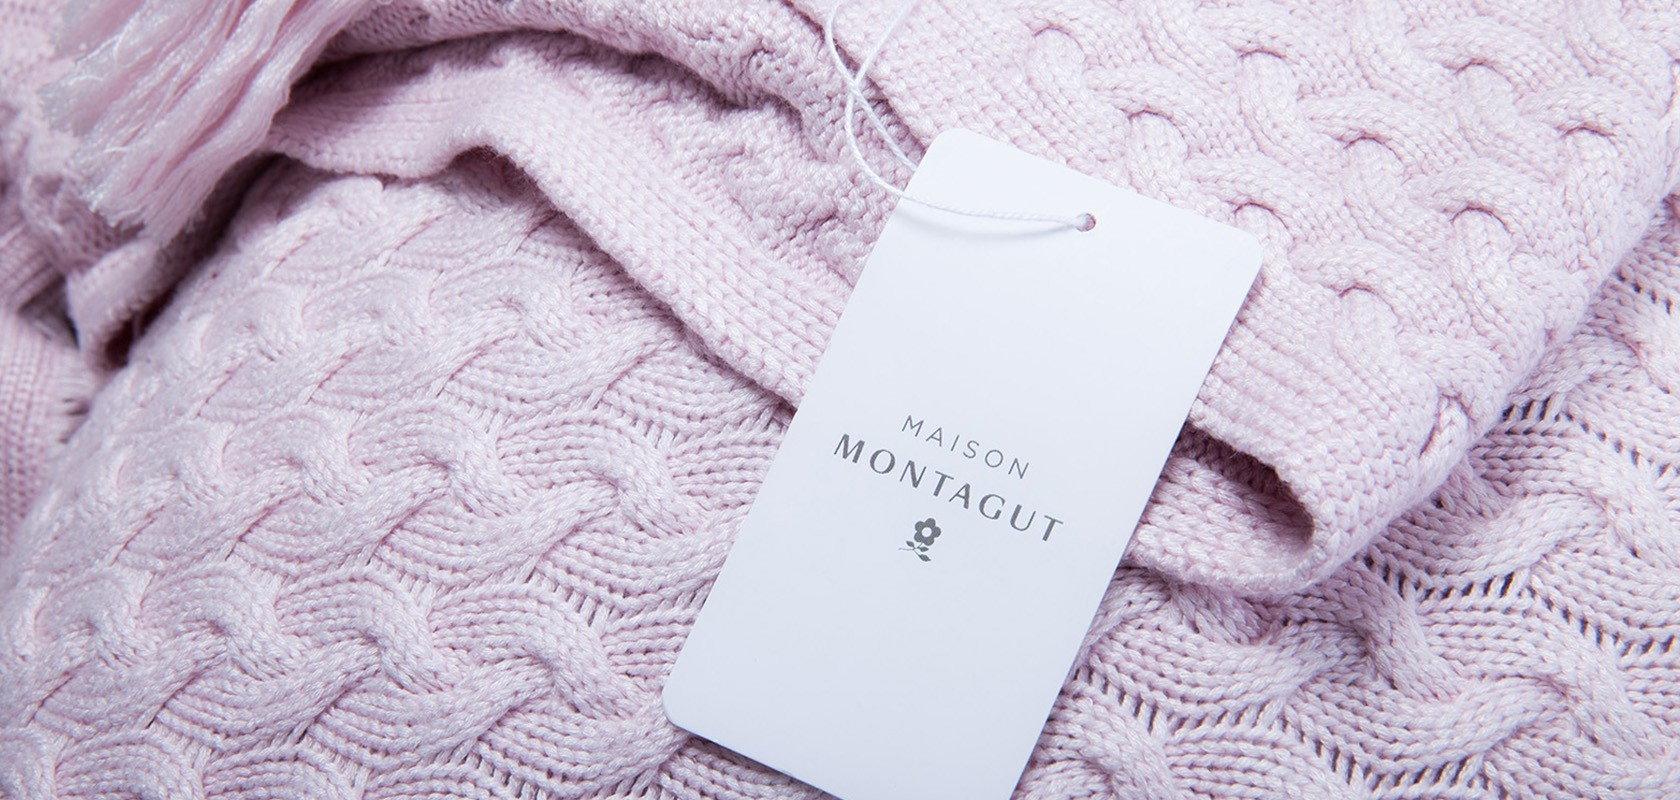 clothing woman previous collections Maison Montagut